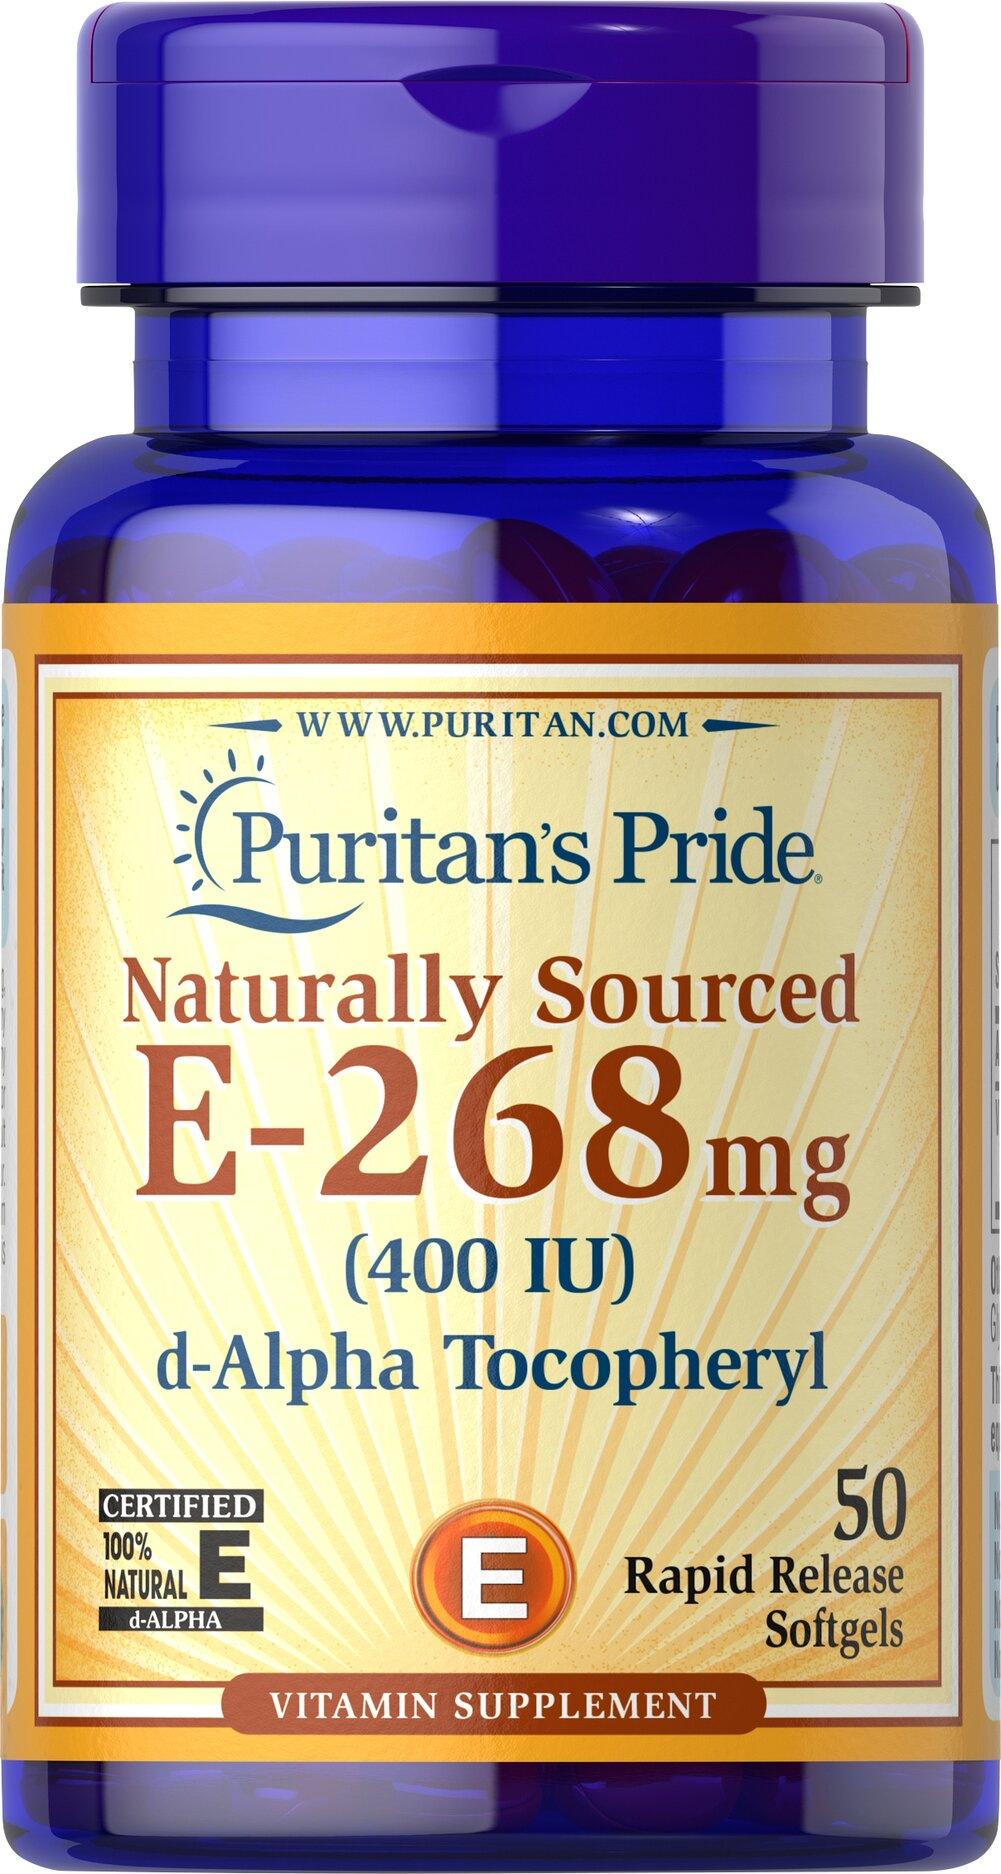 Vitamin E-400 iu 100% Natural <p><b>Vitamin E</b> is a potent antioxidant that helps fight free radicals.** Studies have shown that oxidative stress caused by free radicals may contribute to the premature aging of cells.** Vitamin E also promotes immune function and helps support cardiovascular health.** Our Vitamin E is 100% natural and comes in a convenient to use softgel.</p> 50 Softgels 400 IU $11.99